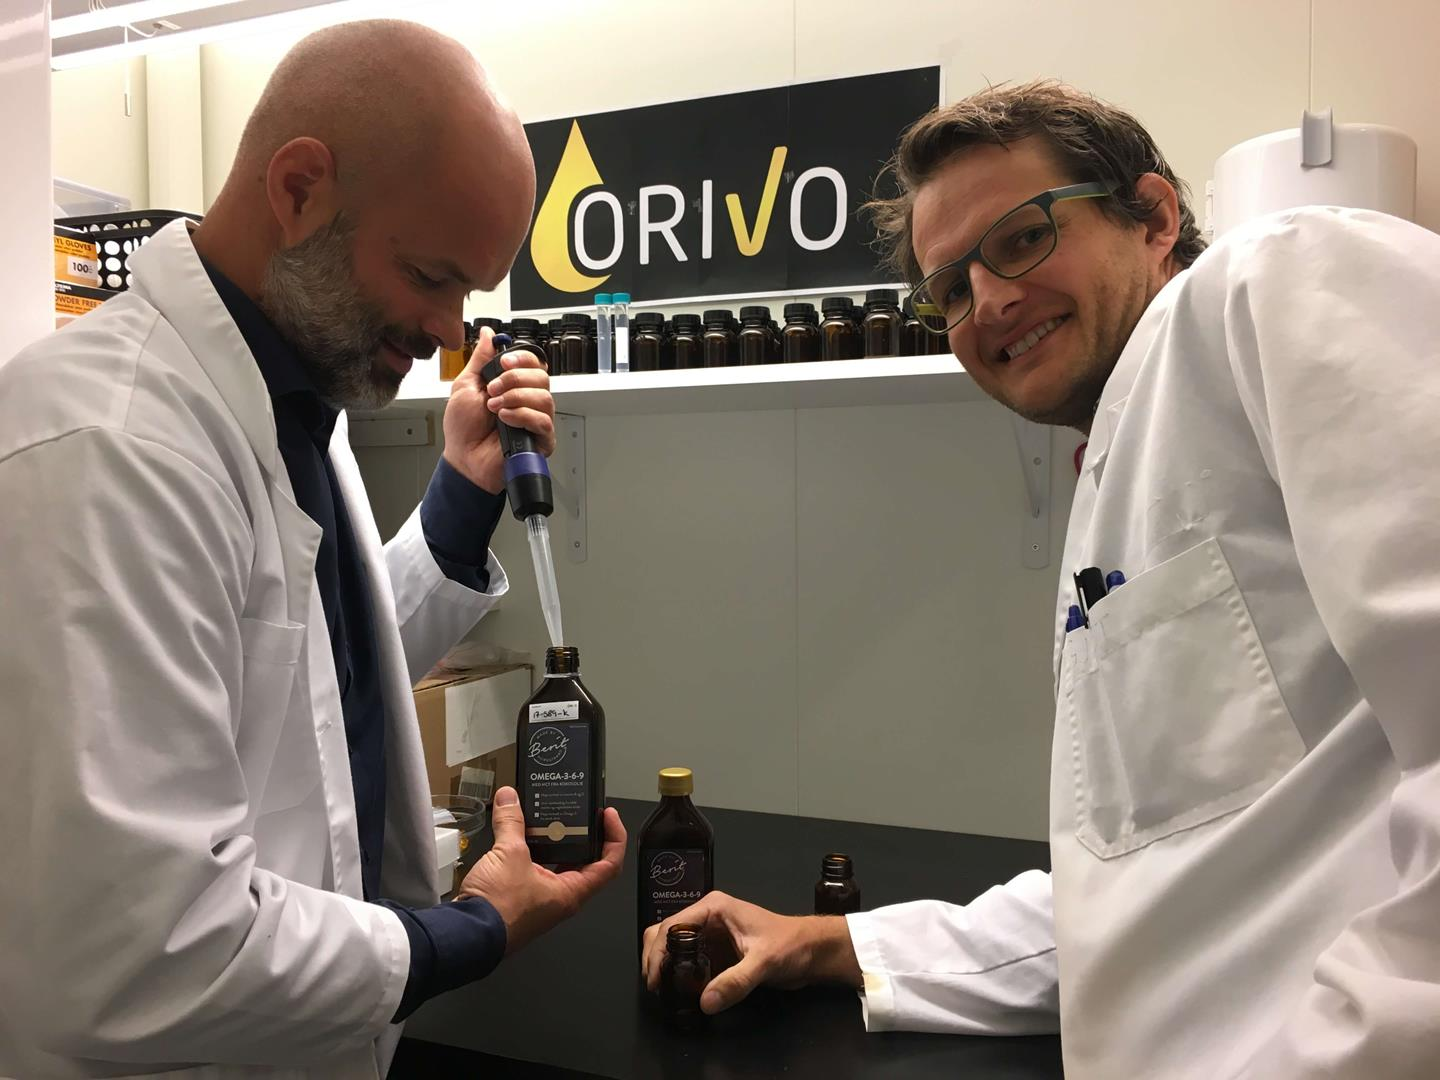 ORIVO has been granted funding from the Norwegian Research Council to develop the next generation DNA-based analysis for feed products and feed ingredients. Among the partners in the project is the Danish sustainable aquaculture feed producer, BioMar, who sees the value of evidence-based transparency in their industry.